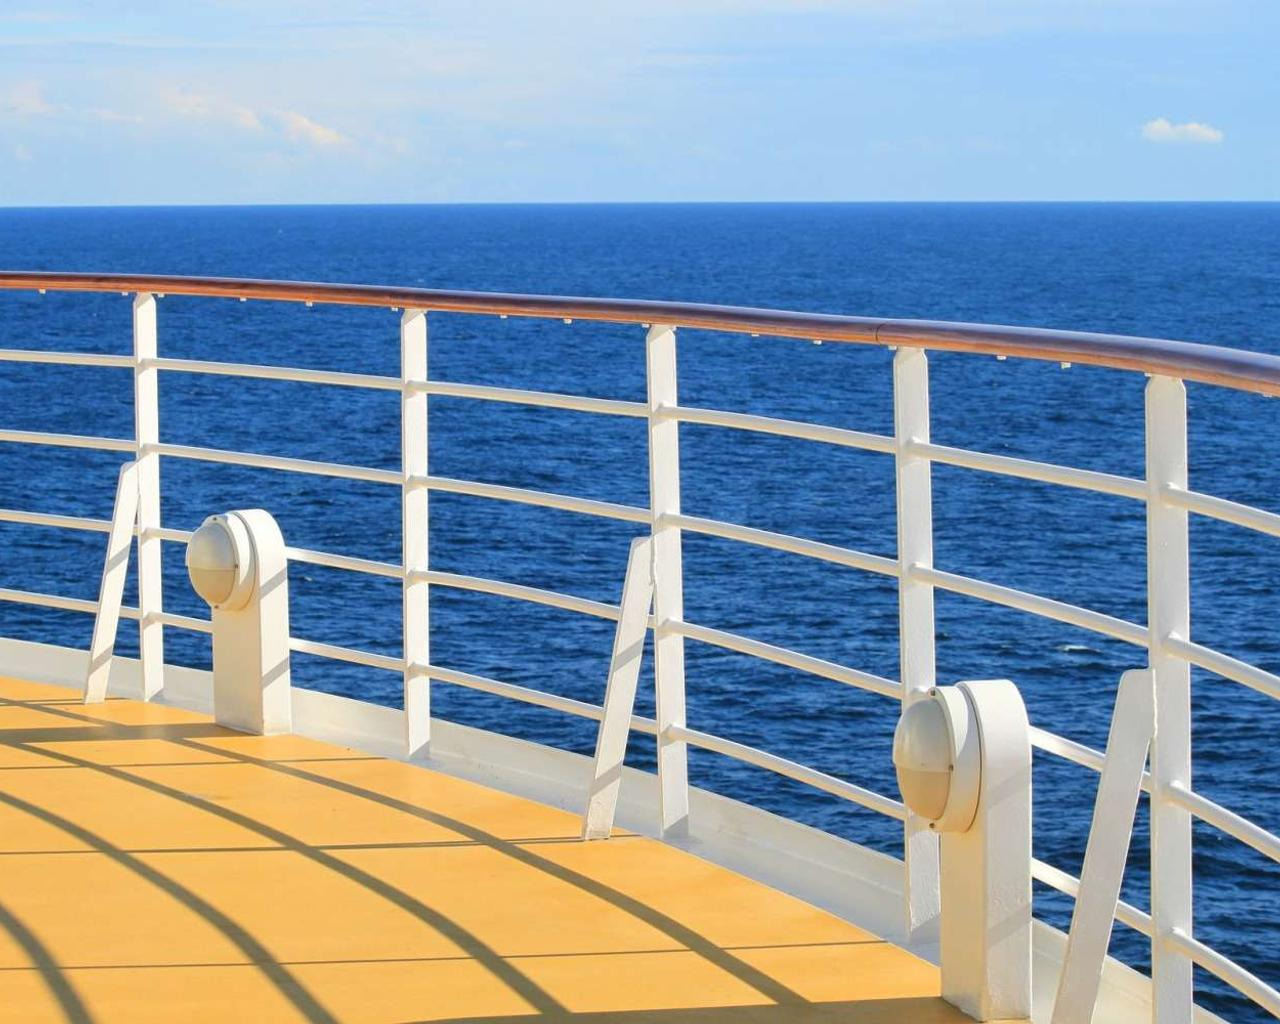 More Victims of Coronavirus Onboard Japanese Cruise Ship—Numbers Jump Astronomically